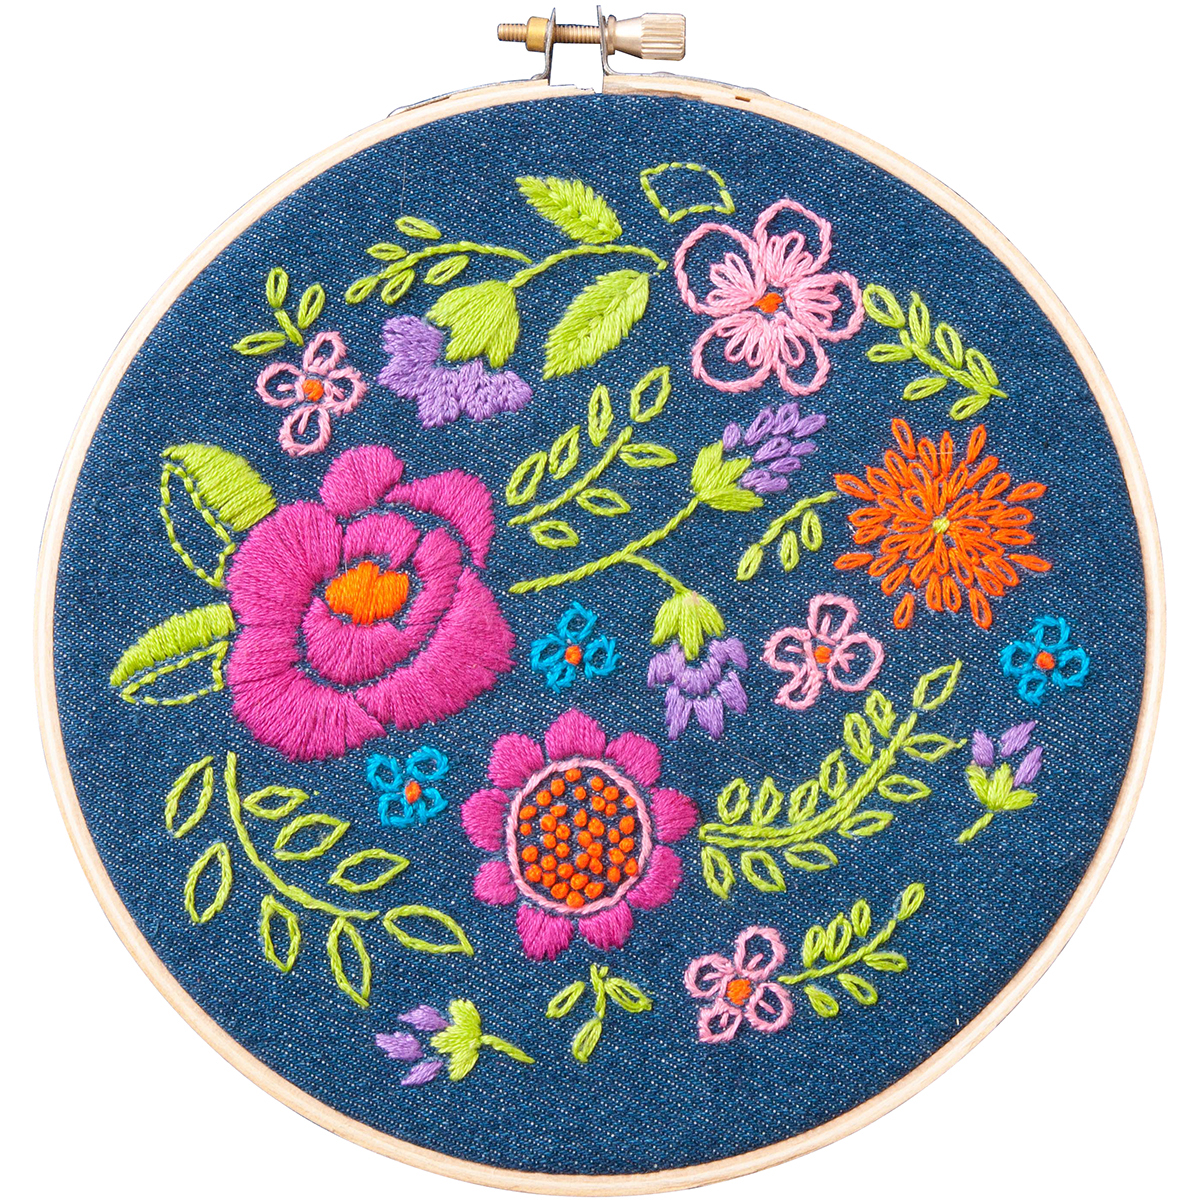 "Bucilla Stmaped Embroidery Kit 6"" Round-Floral Explosion"